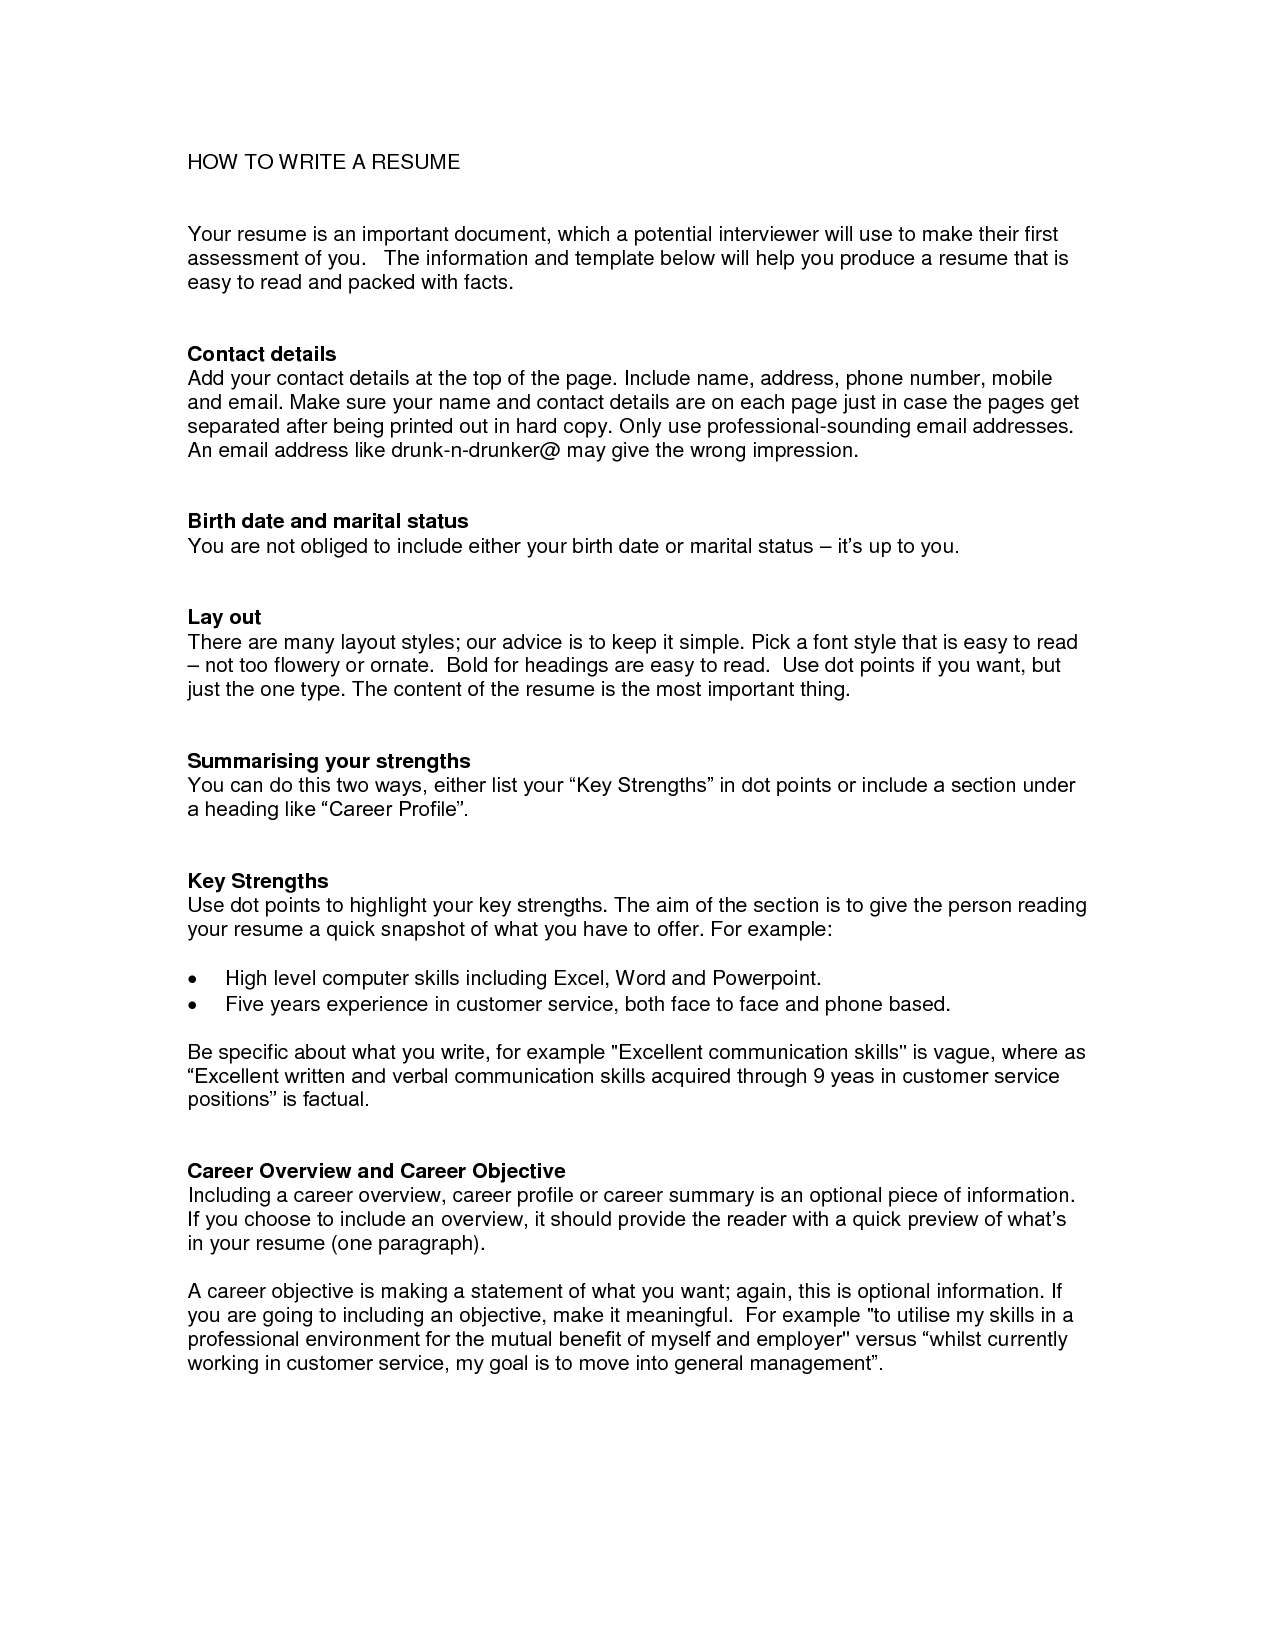 Resume Samples Online How To Write A Resume Net The Easiest Online Resume